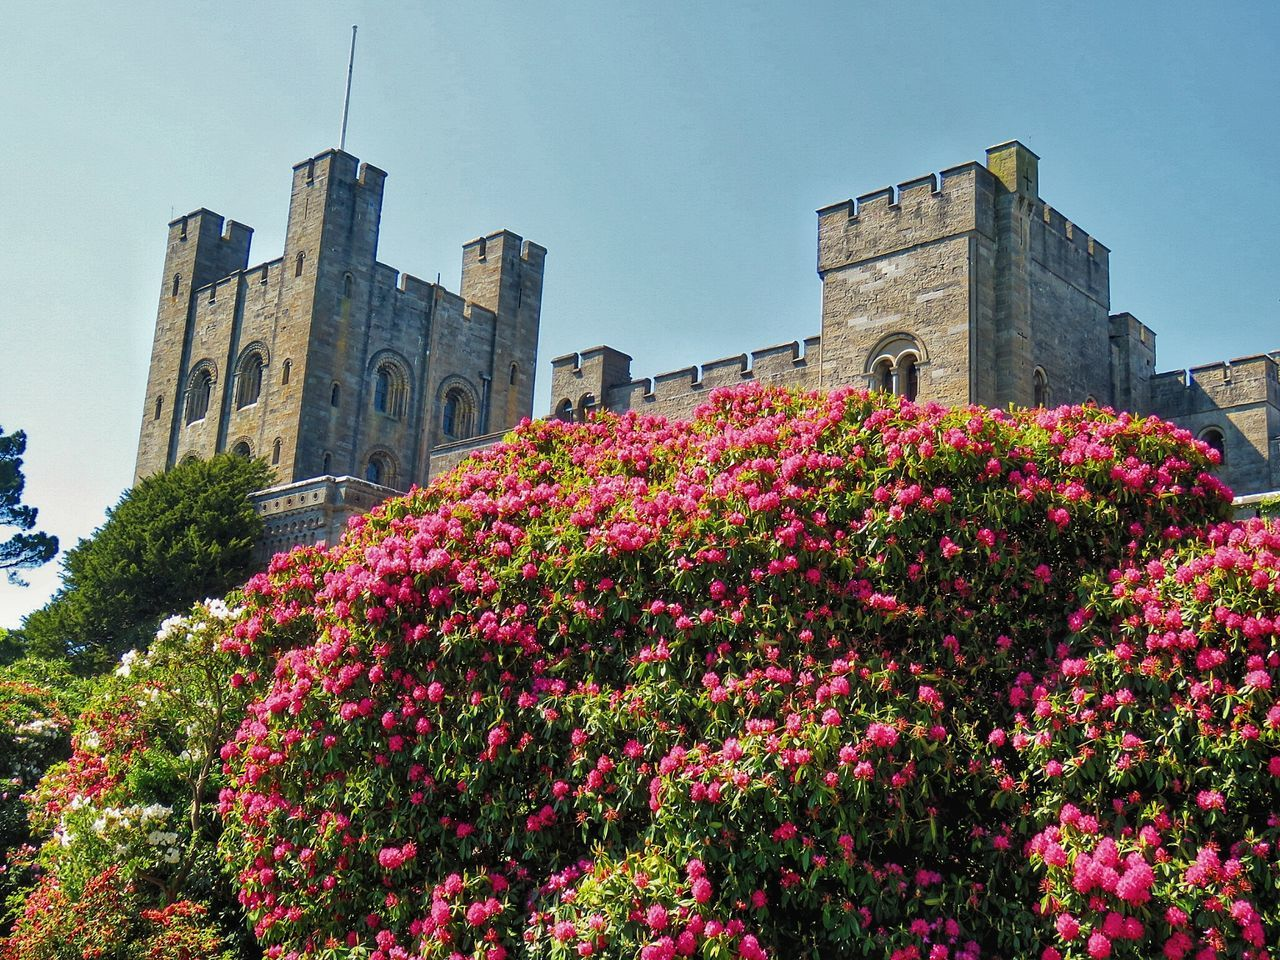 Penrhyn castle,, north wales, uk.. Architecture Building Exterior Outdoors History Travel Destinations Castle Architecture Castles Castle View  Castle Grounds History Architecture Historical Building Historical Architecture Historic Buildings  History Through The Lens  Historical Sites Colour Photography EyeEm Gallery Eyem Best Shot - Architecture The Great Outdoors - 2017 EyeEm Awards Structures And Architecture Statley Homes Architecture Photography Architectural Photography Structure Photography